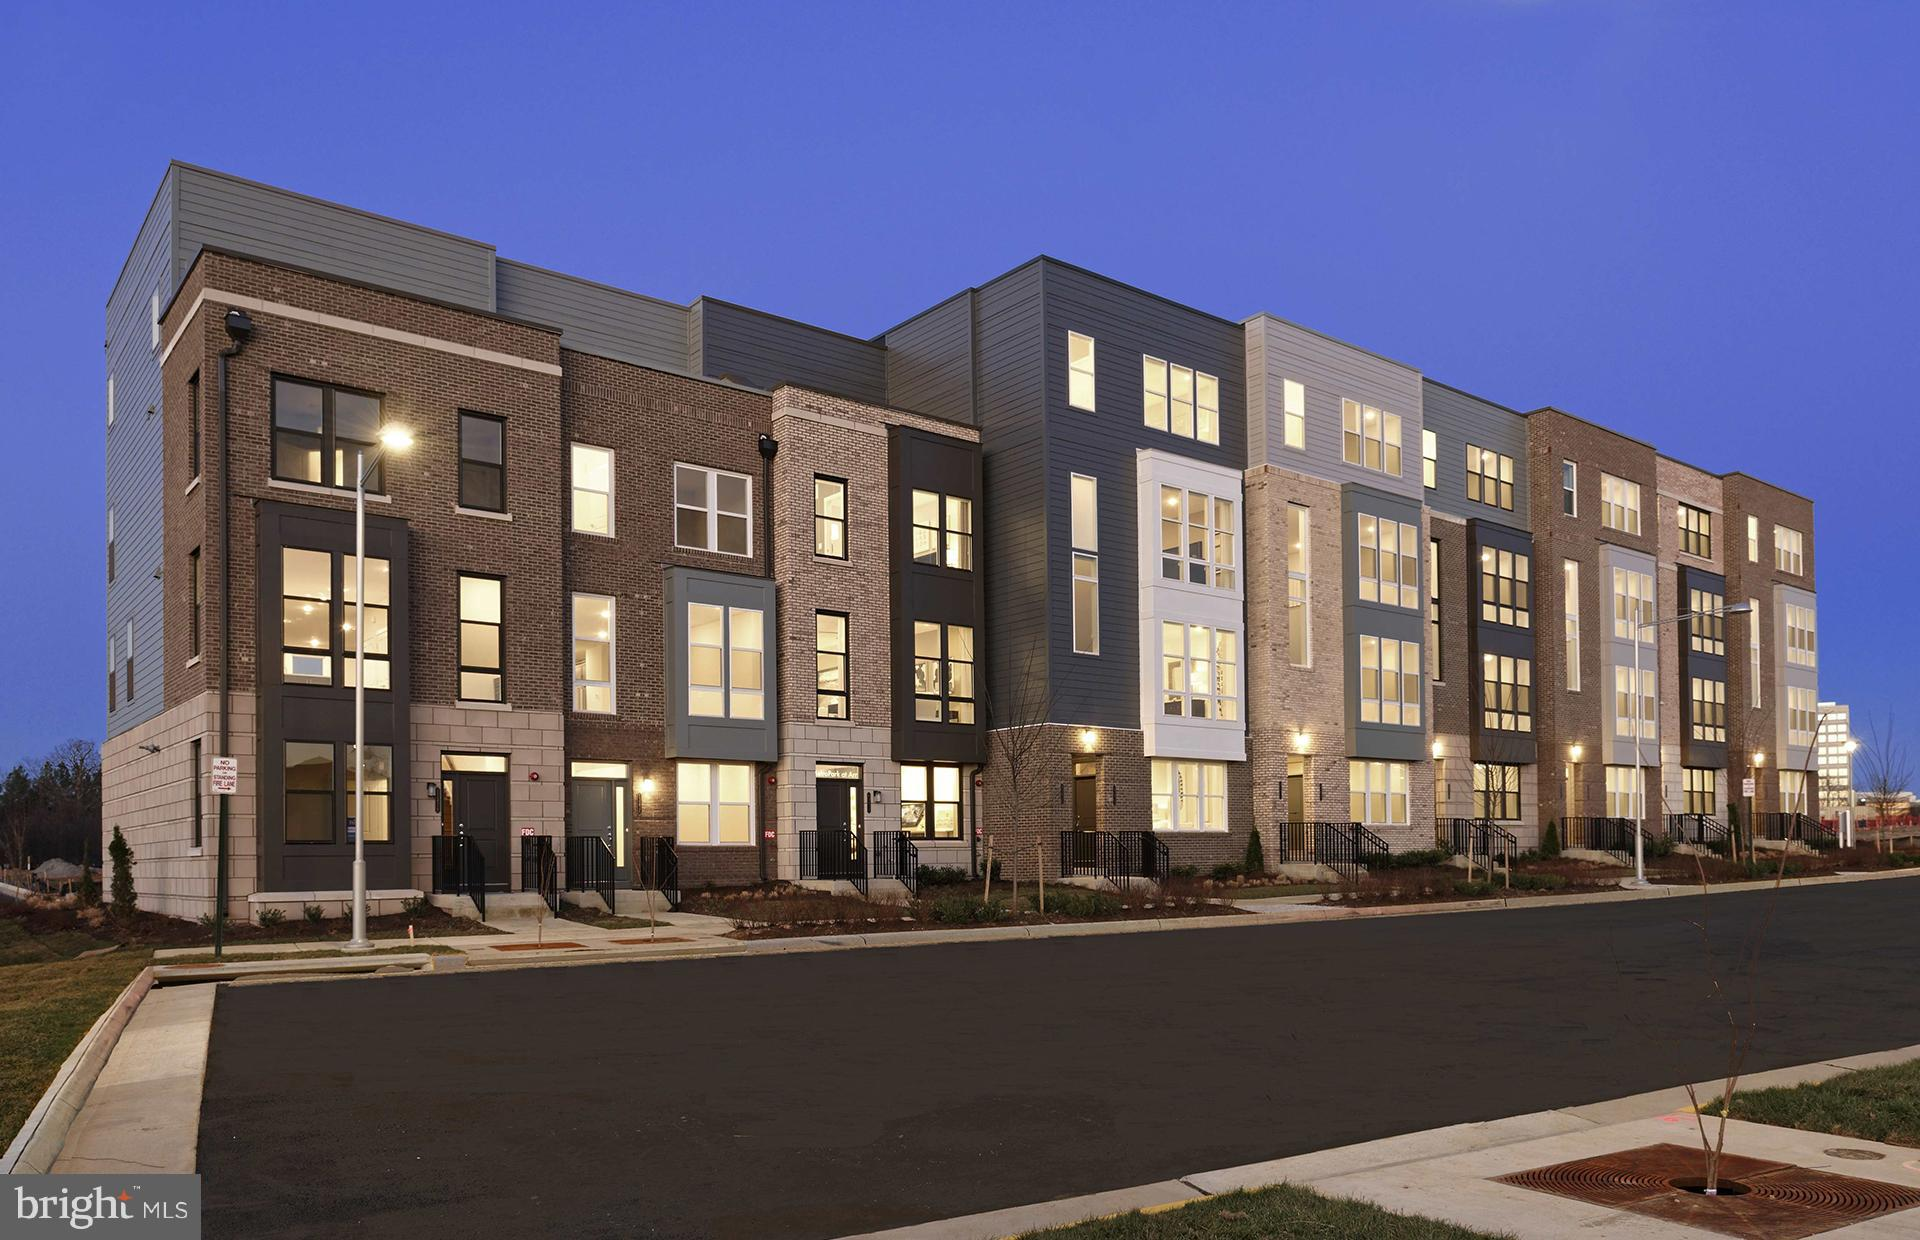 NEW HOME. MetroPark @ Arrowbrook by Pulte Homes. Well Appointed Brick Front Luxury 2 Story Townhome